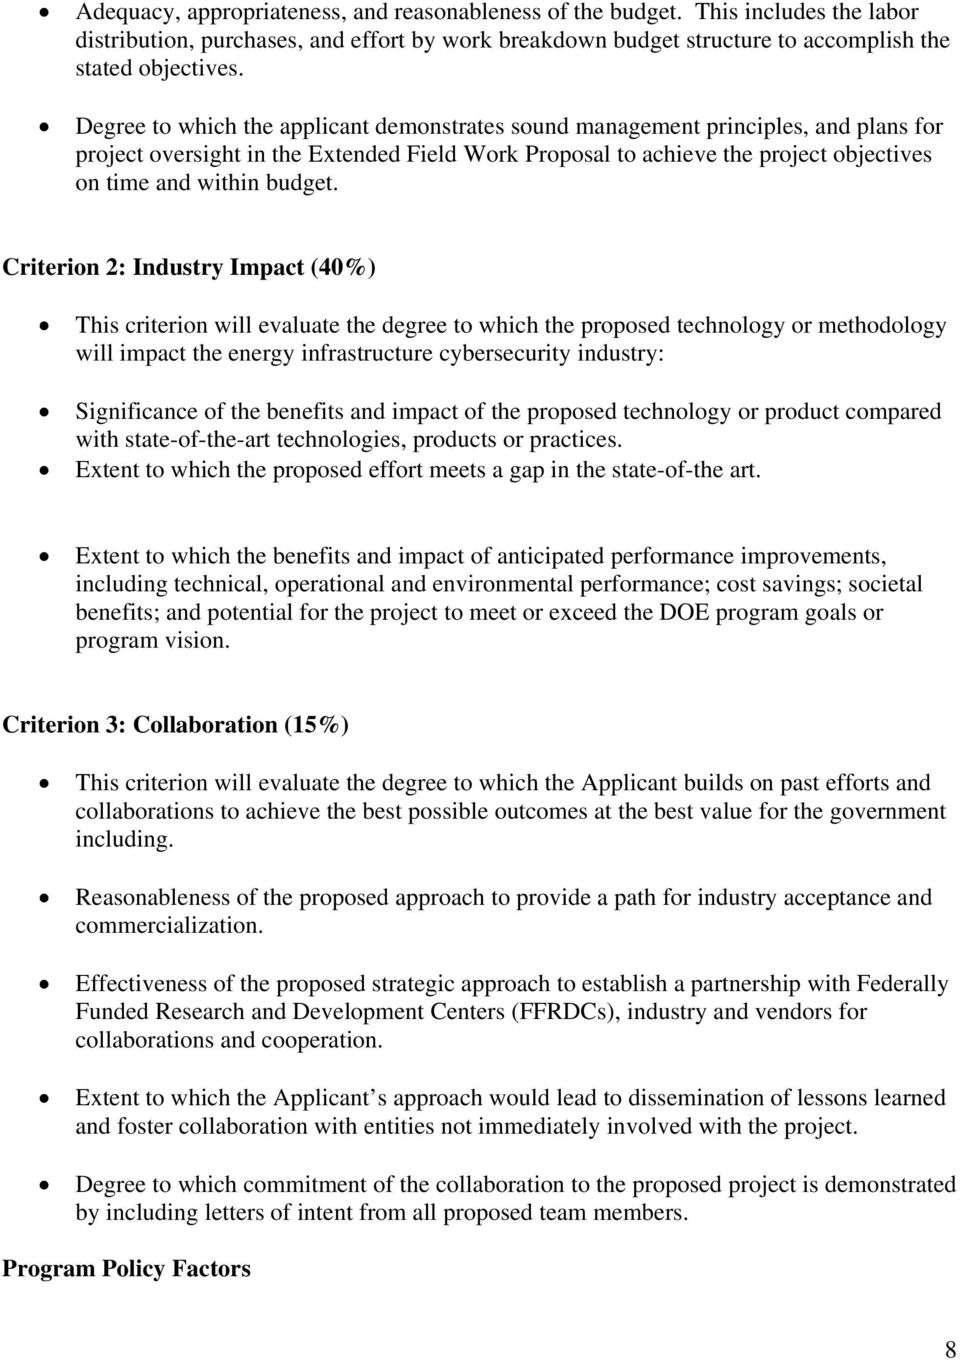 Criterion 2: Industry Impact (40%) This criterion will evaluate the degree to which the proposed technology or methodology will impact the energy infrastructure cybersecurity industry: Significance